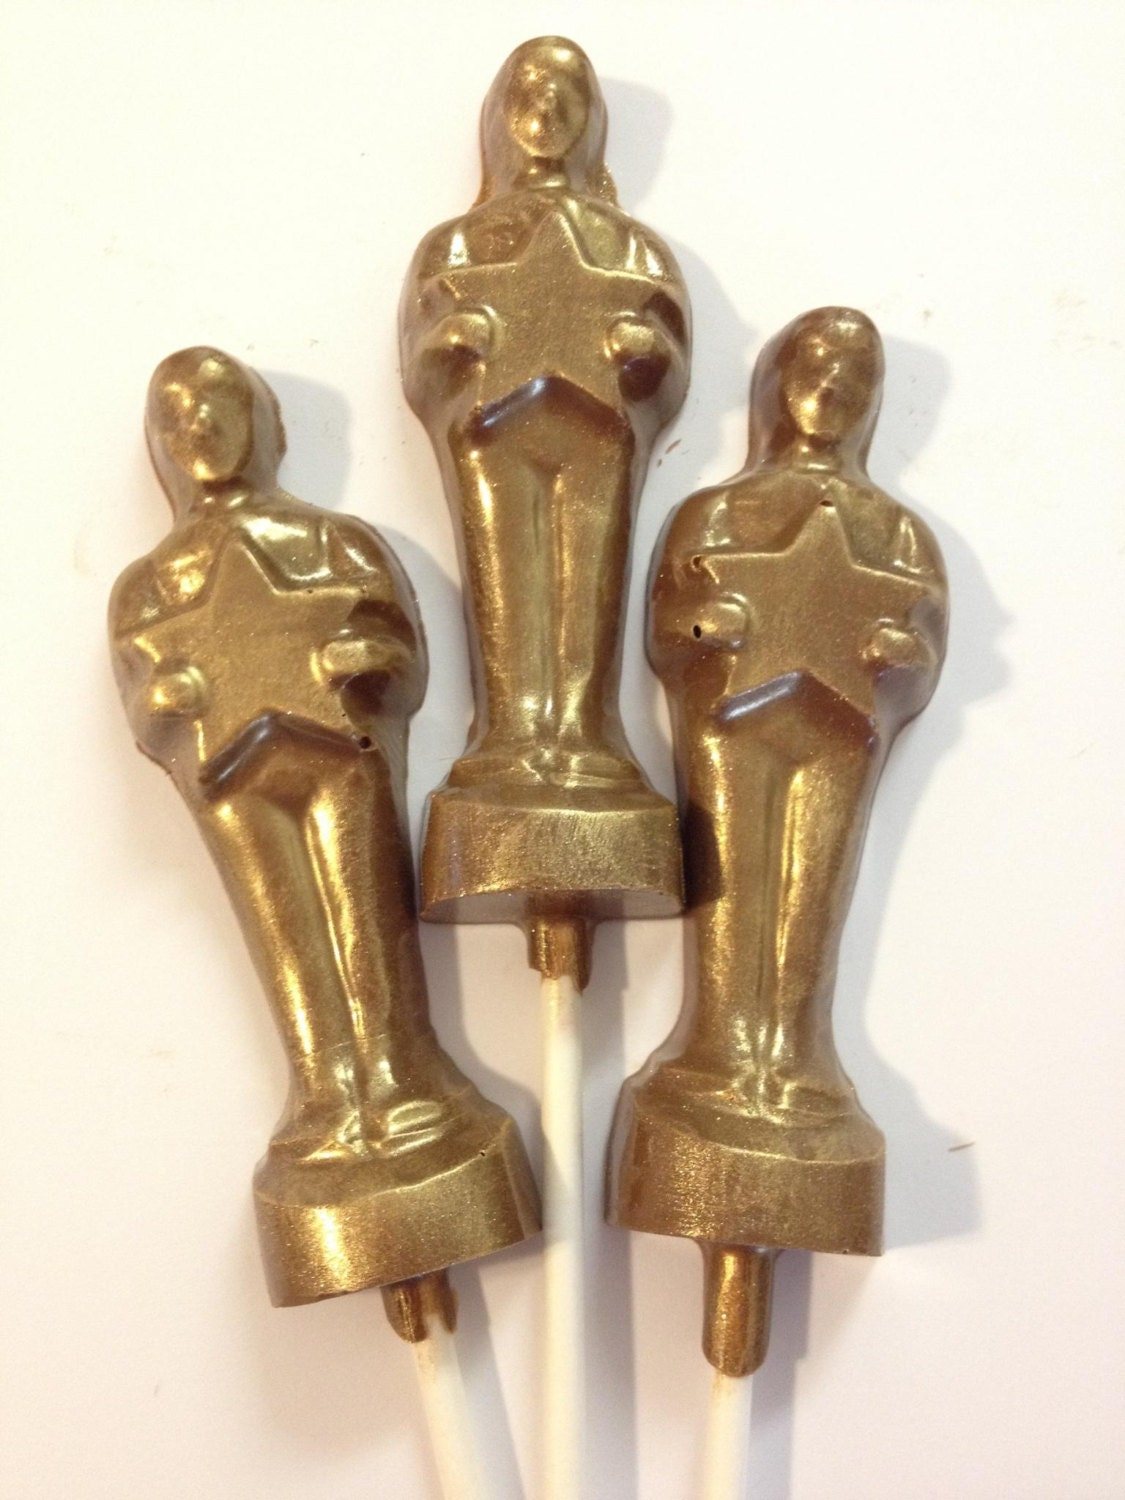 The Ockman Bar Mitzvah Family Spotlight likewise Other Favor Items together with American Revolution Demotivational likewise Oscar Award Statue Cookie Cutter moreover Chocolate Oscar Party Favors. on oscar candy statue favors